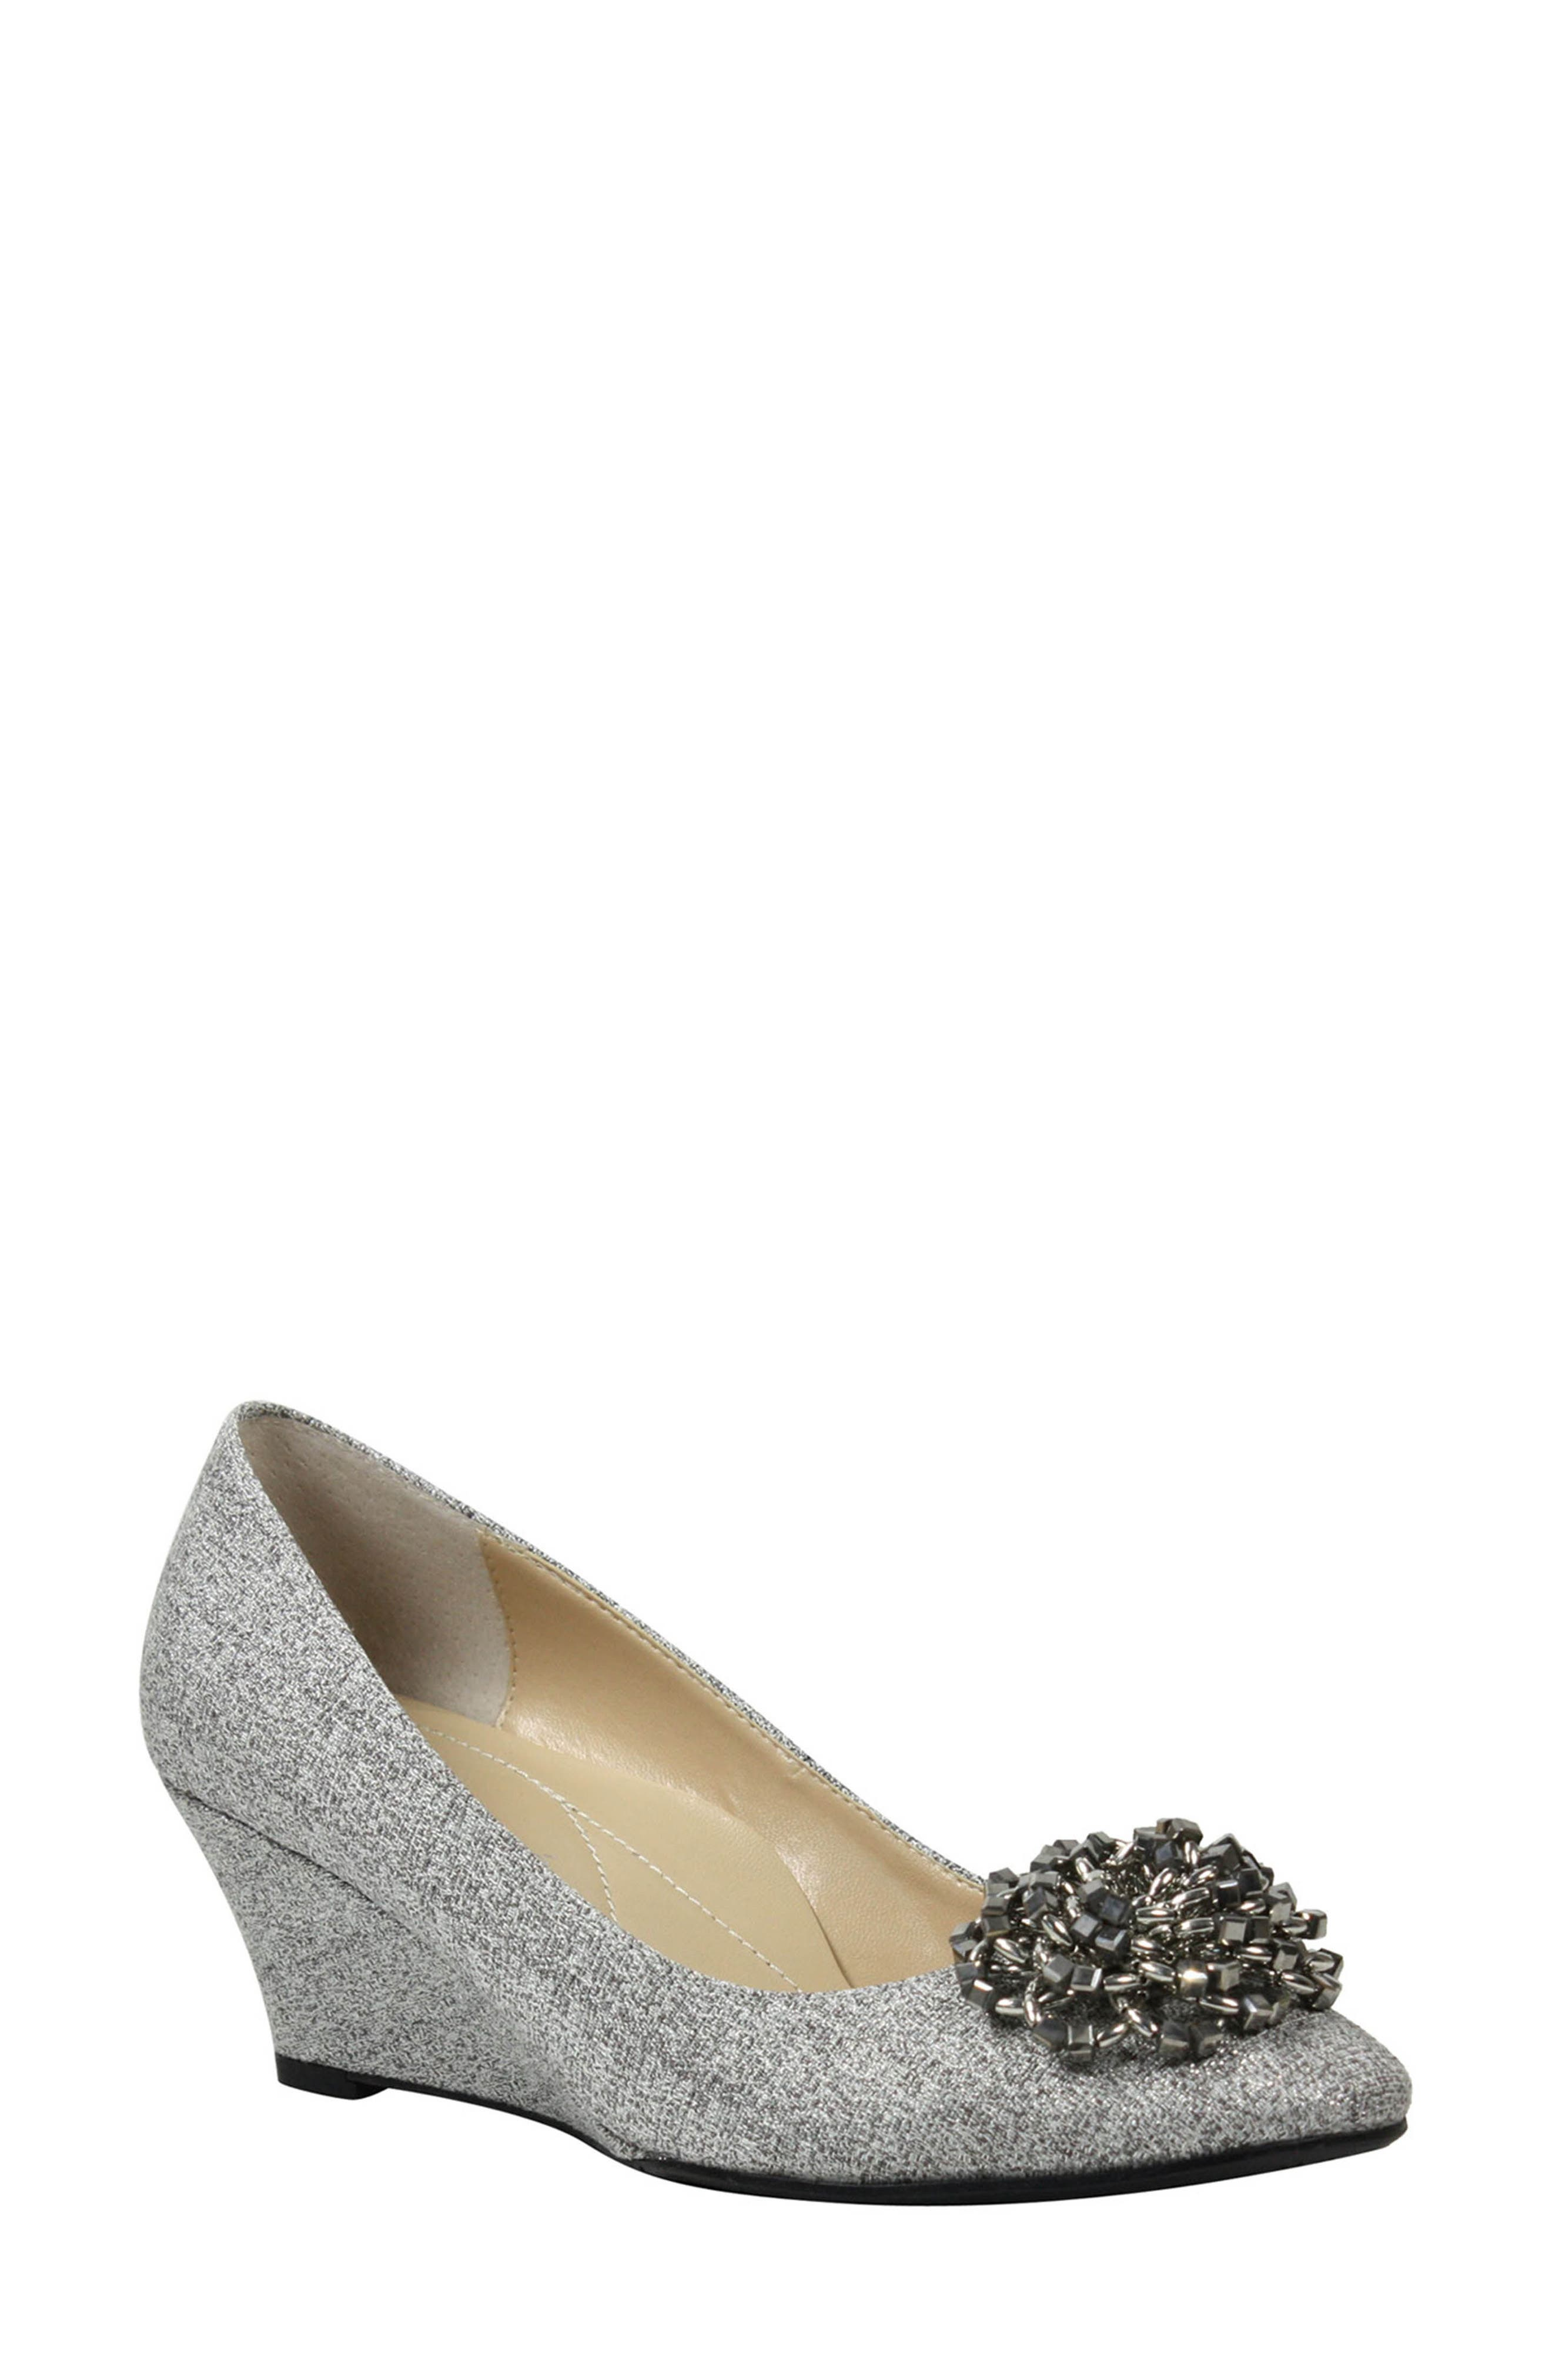 Eloisa Wedge,                             Main thumbnail 1, color,                             Pewter